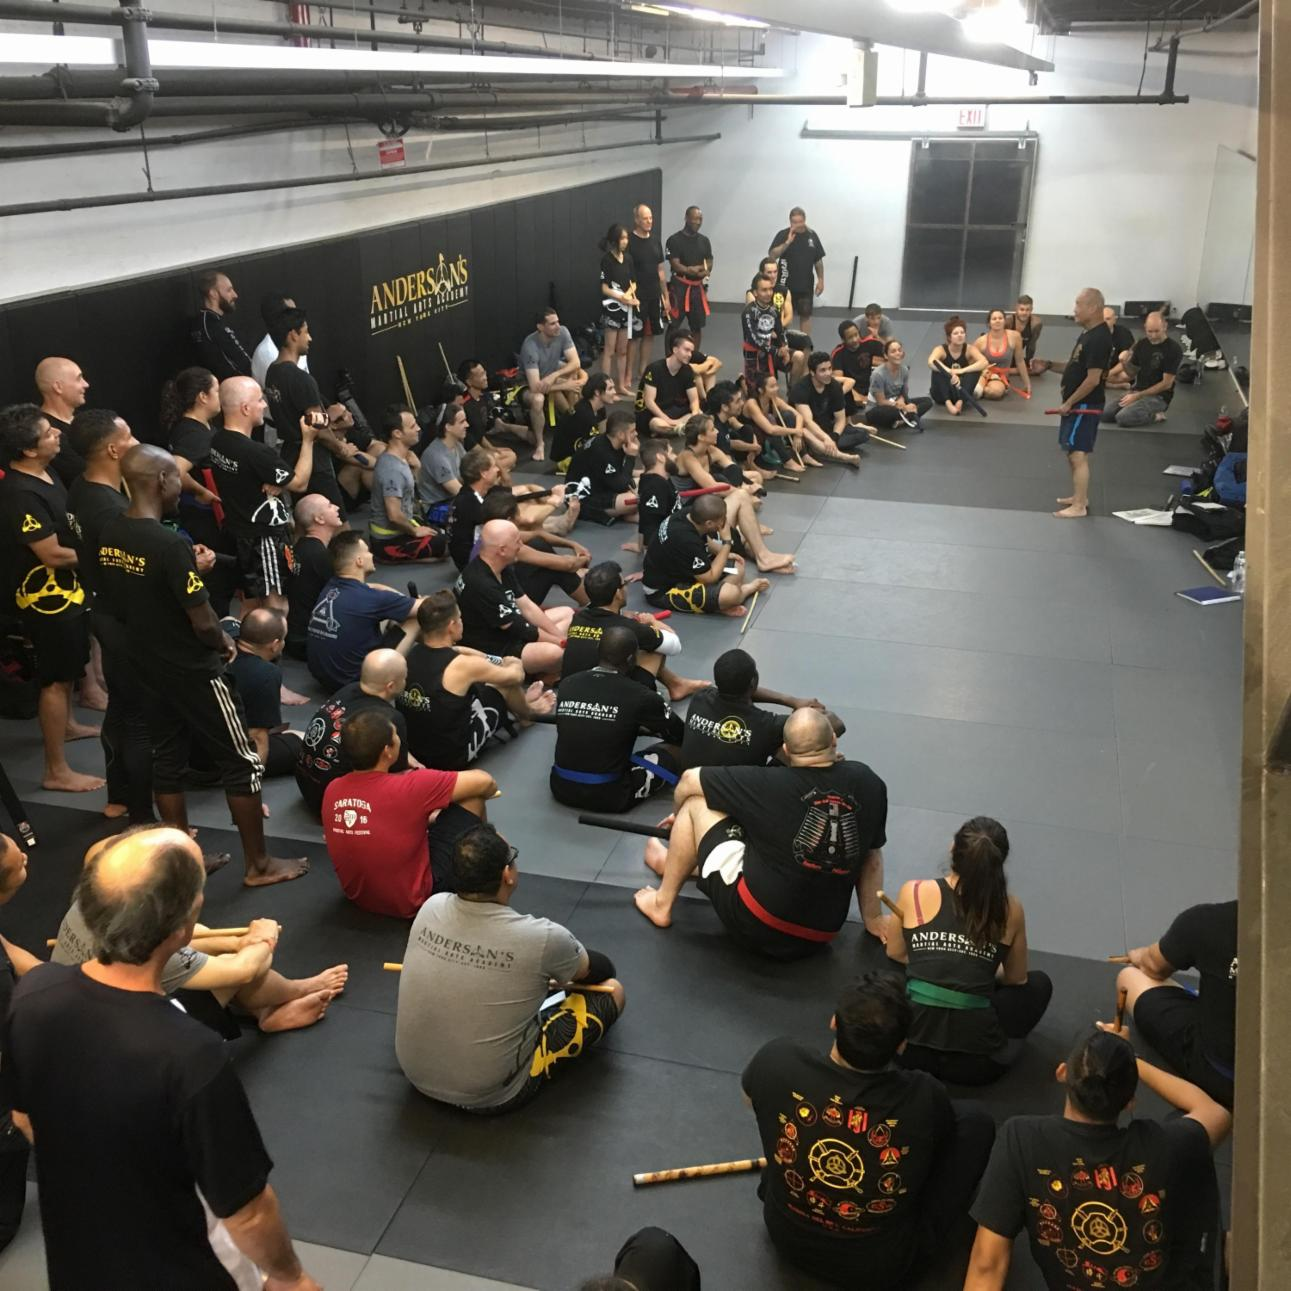 What A Beginner Student Should Know About A Guro Dan Inosanto Seminar At Andersons Martial Arts Academy NYC